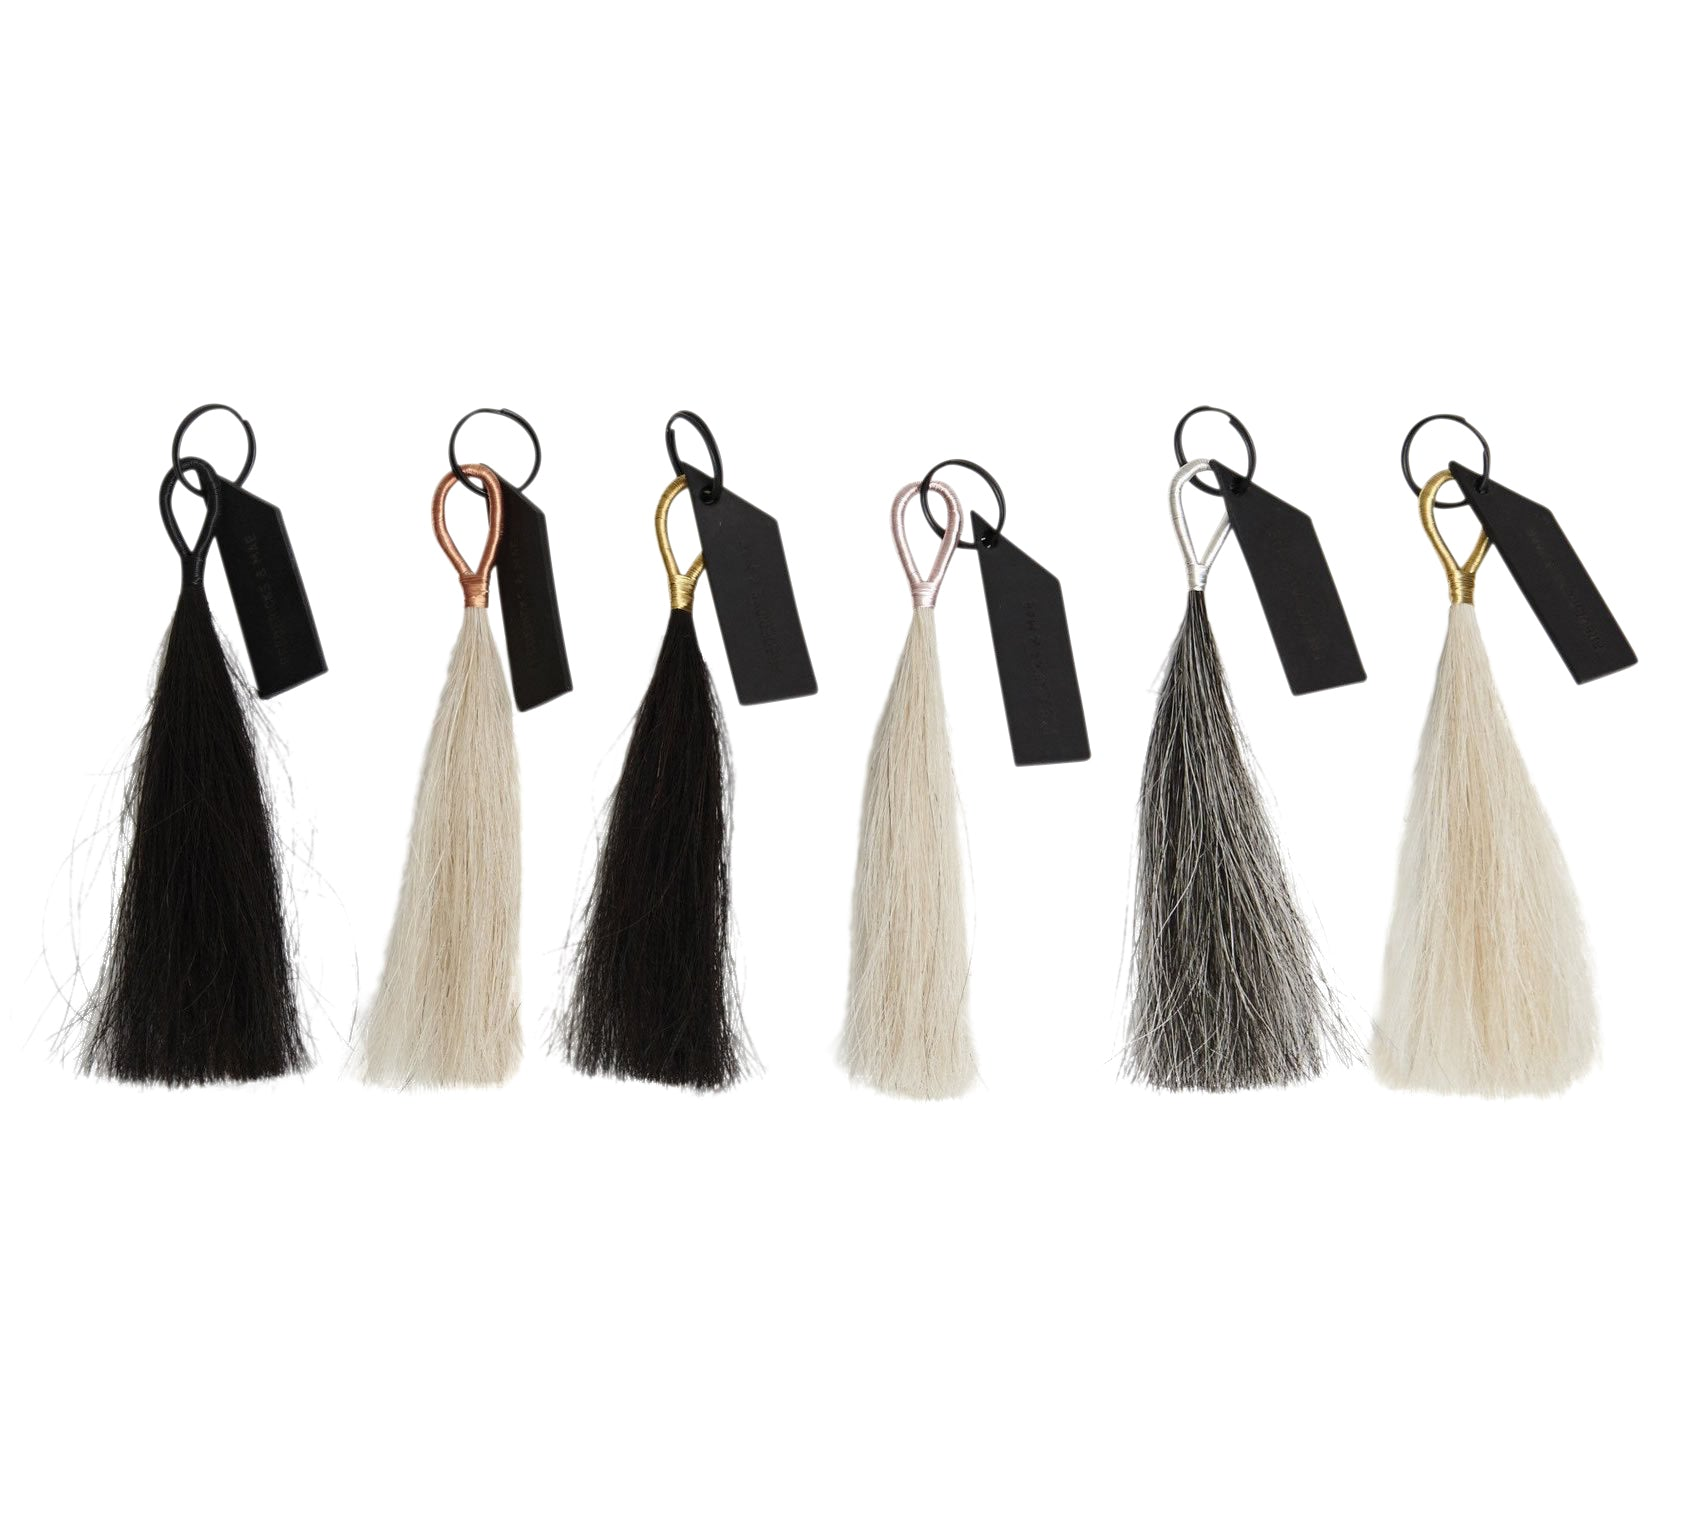 Fredericks and Mae Horse Hair Tassel Key Chain